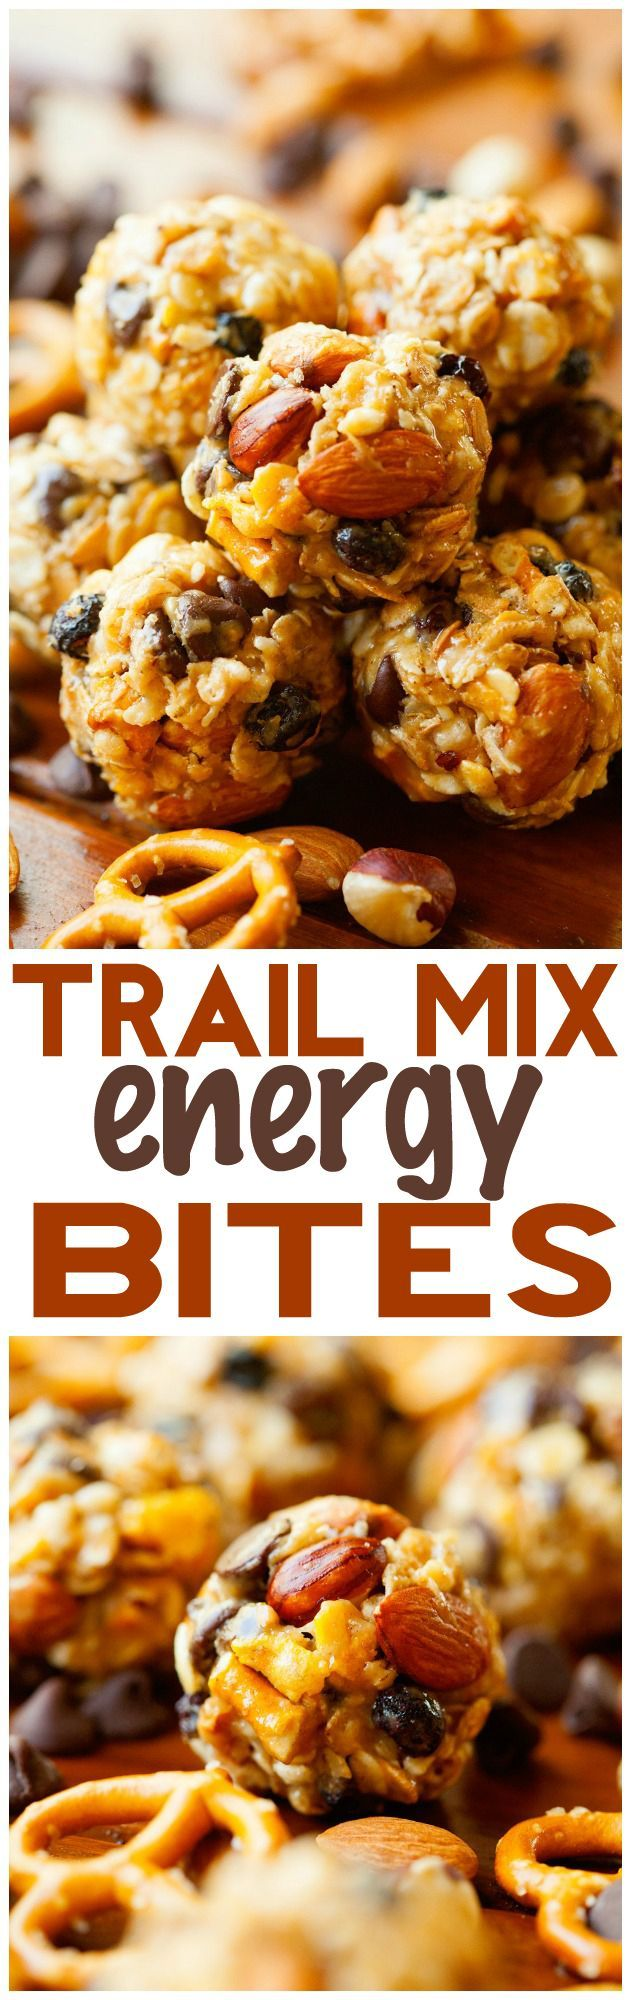 How To Eat Trail Mix Energy Bites These Are So Easy To Make And Are A